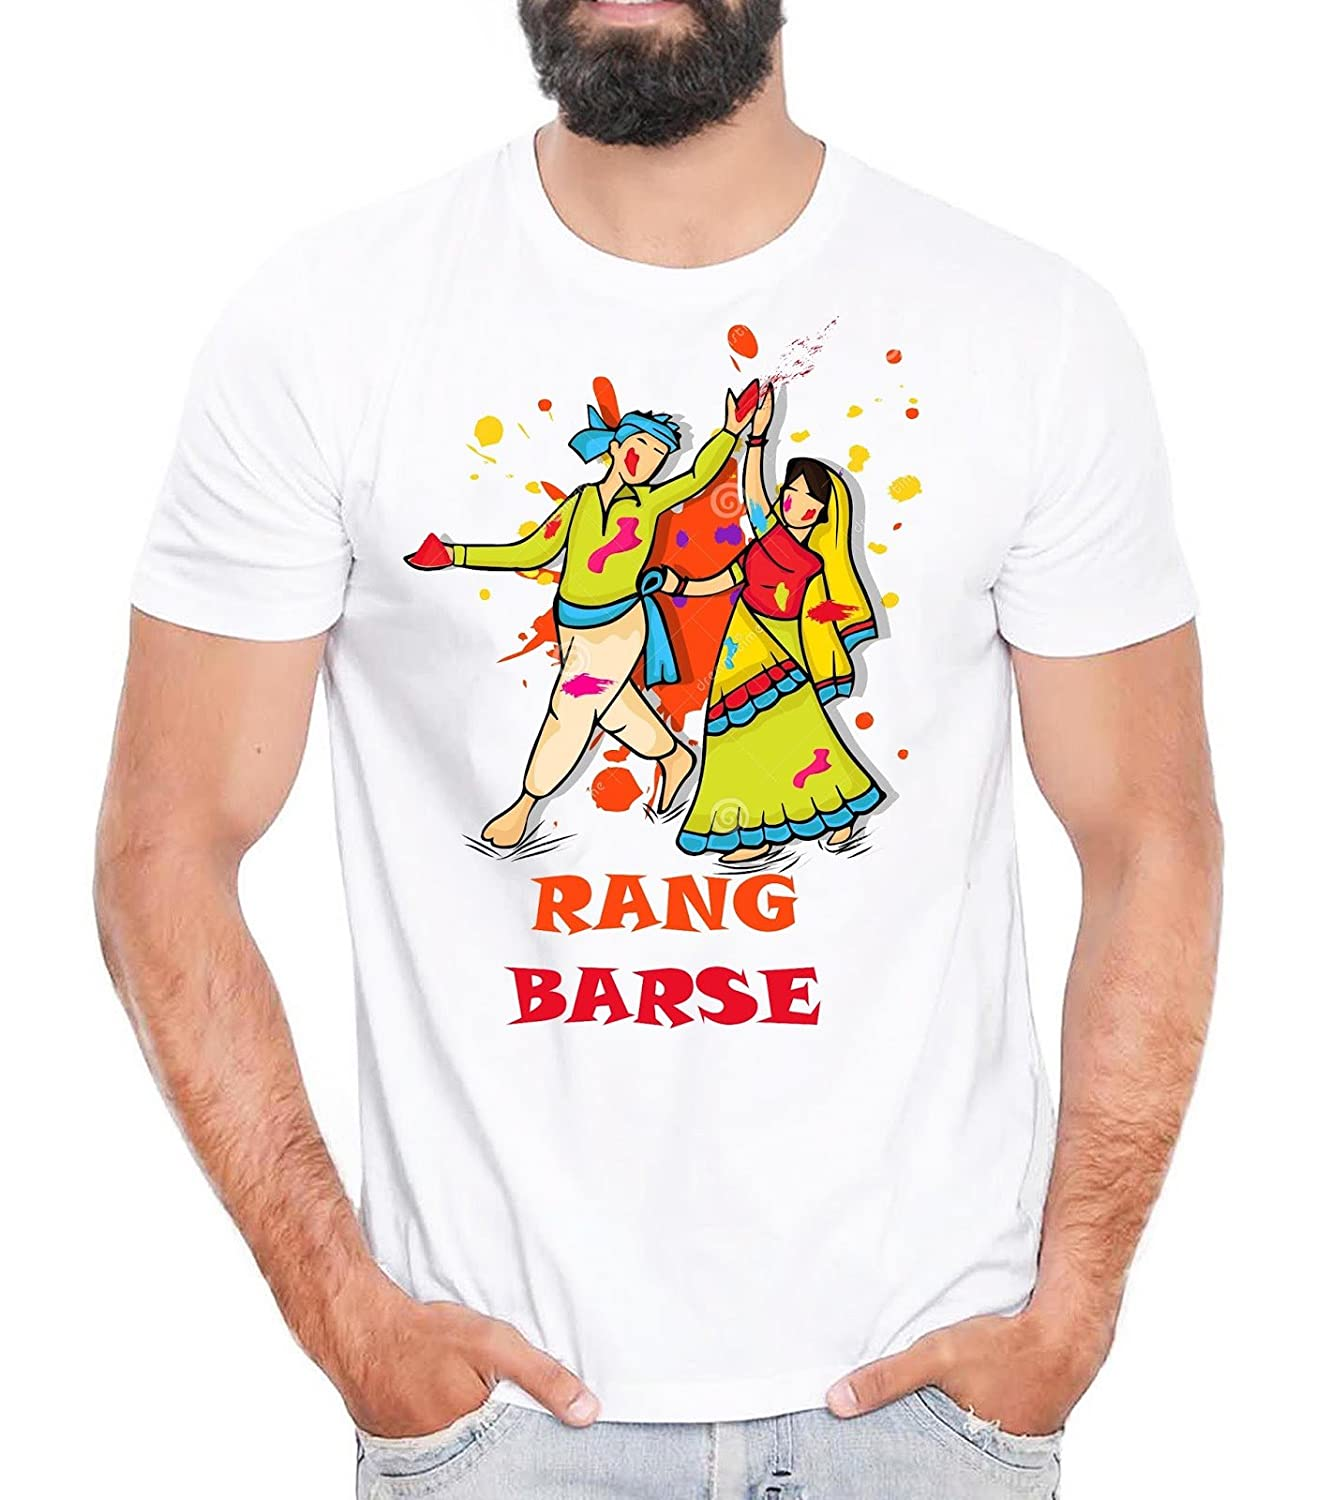 Best Holi T-shirts Under 300 in India 2018